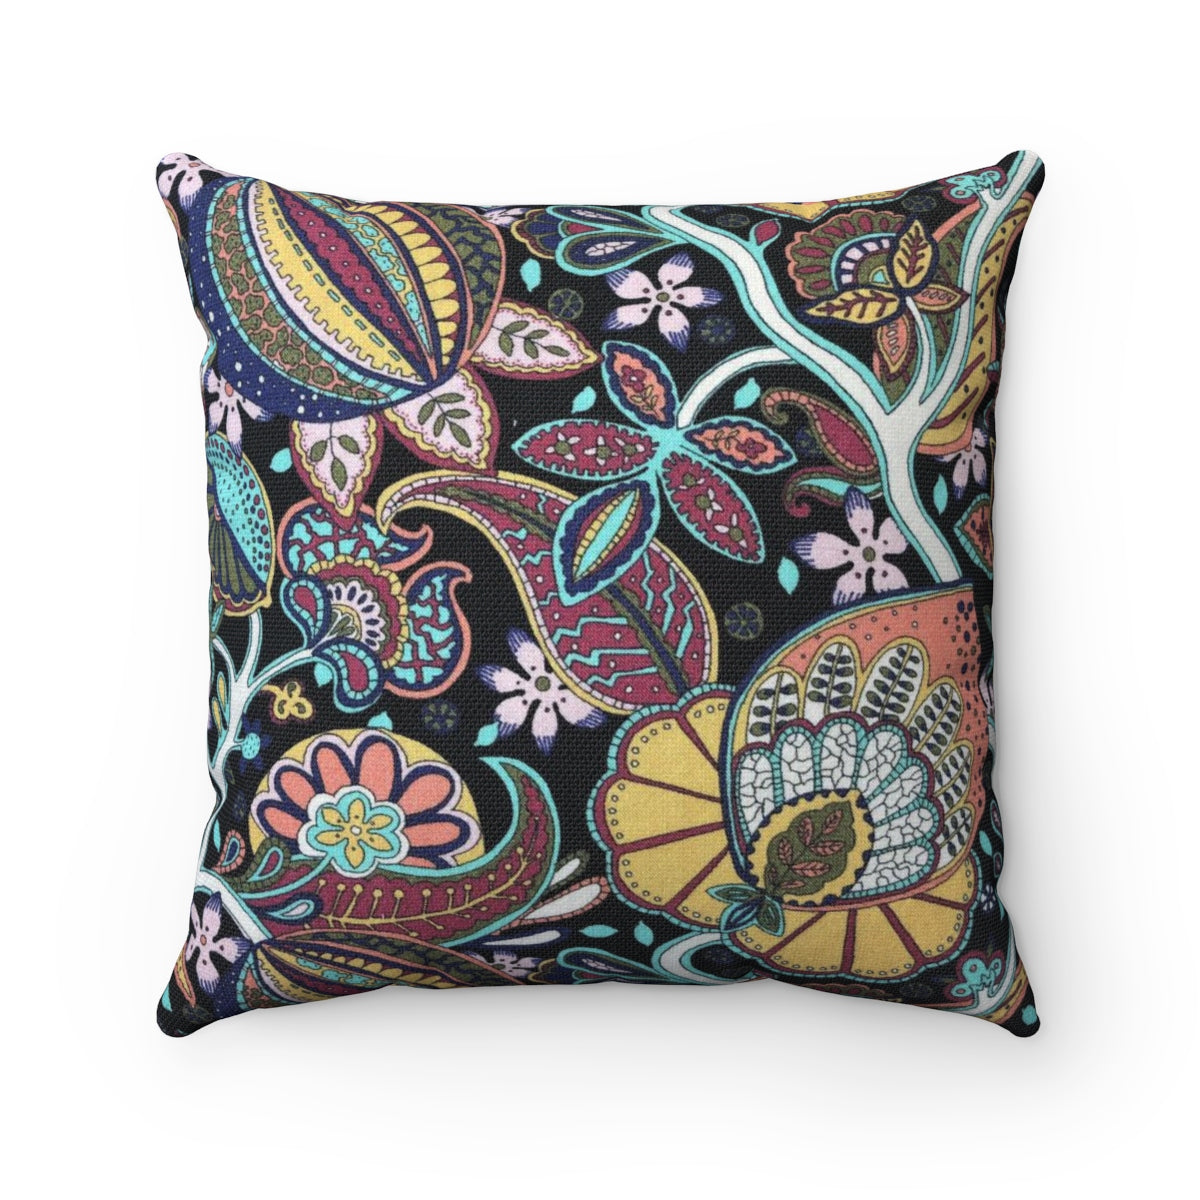 Nothe Garden Spun Polyester Square Pillow